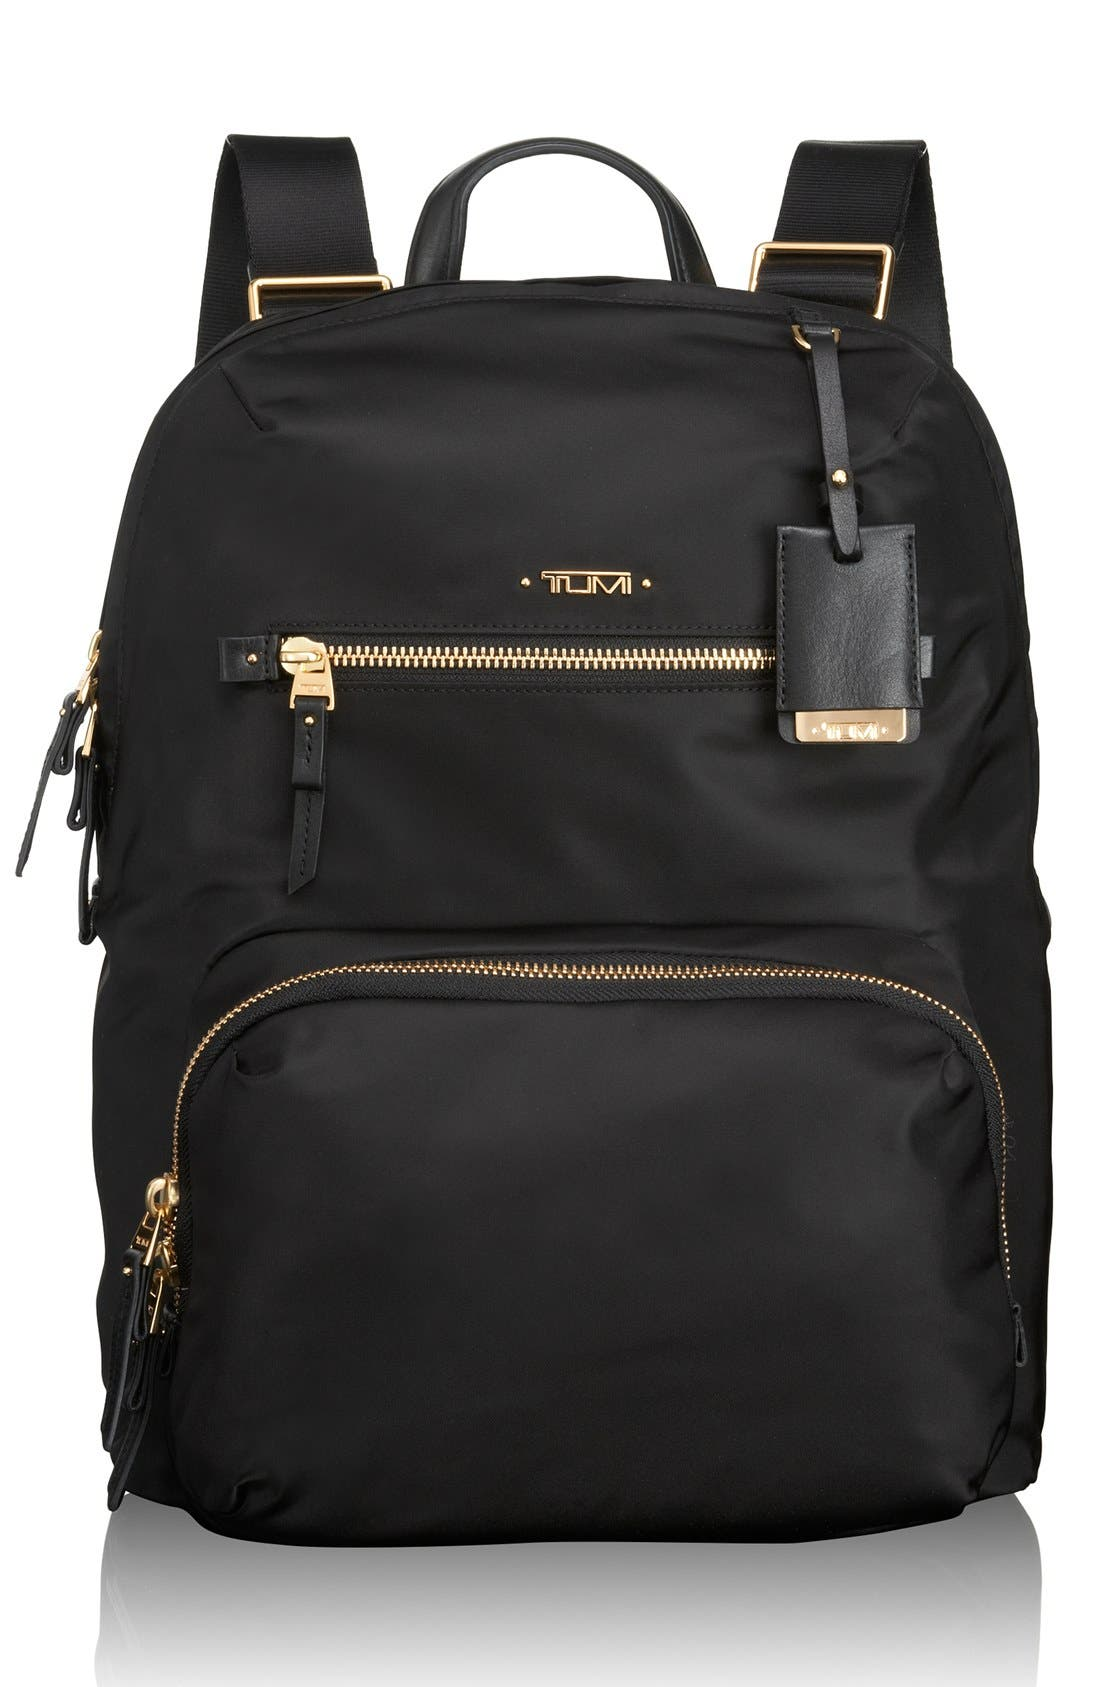 Alternate Image 1 Selected - Tumi 'Voyageur Halle' Nylon Backpack